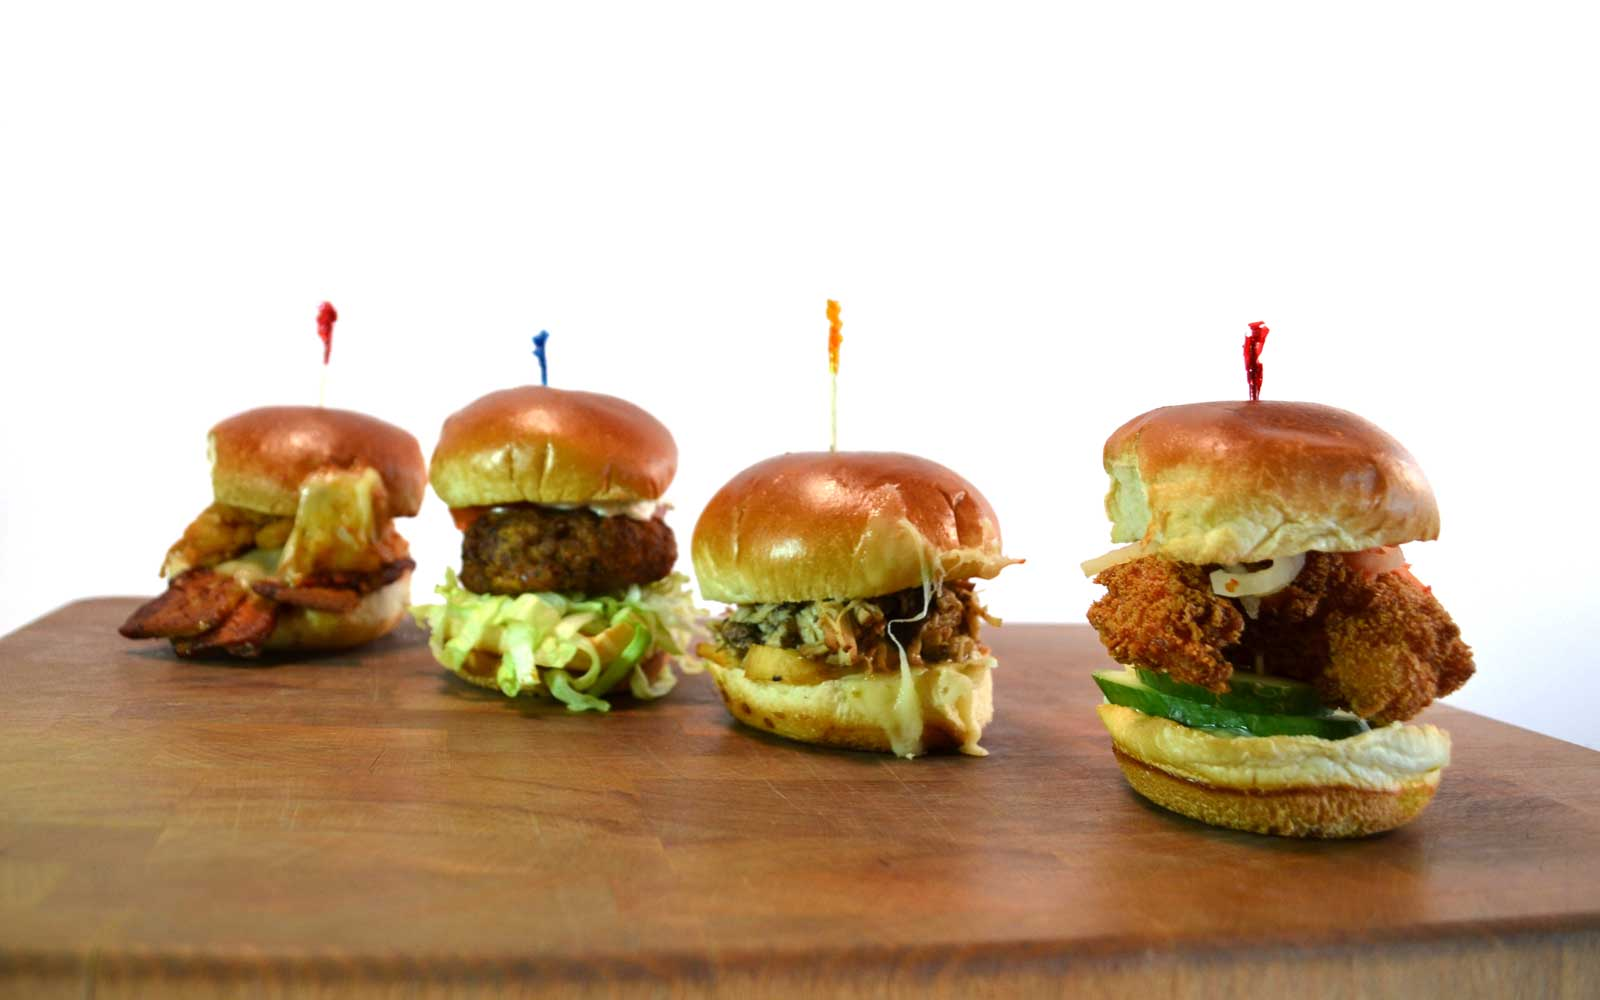 9.Sly's Sliders and Fries